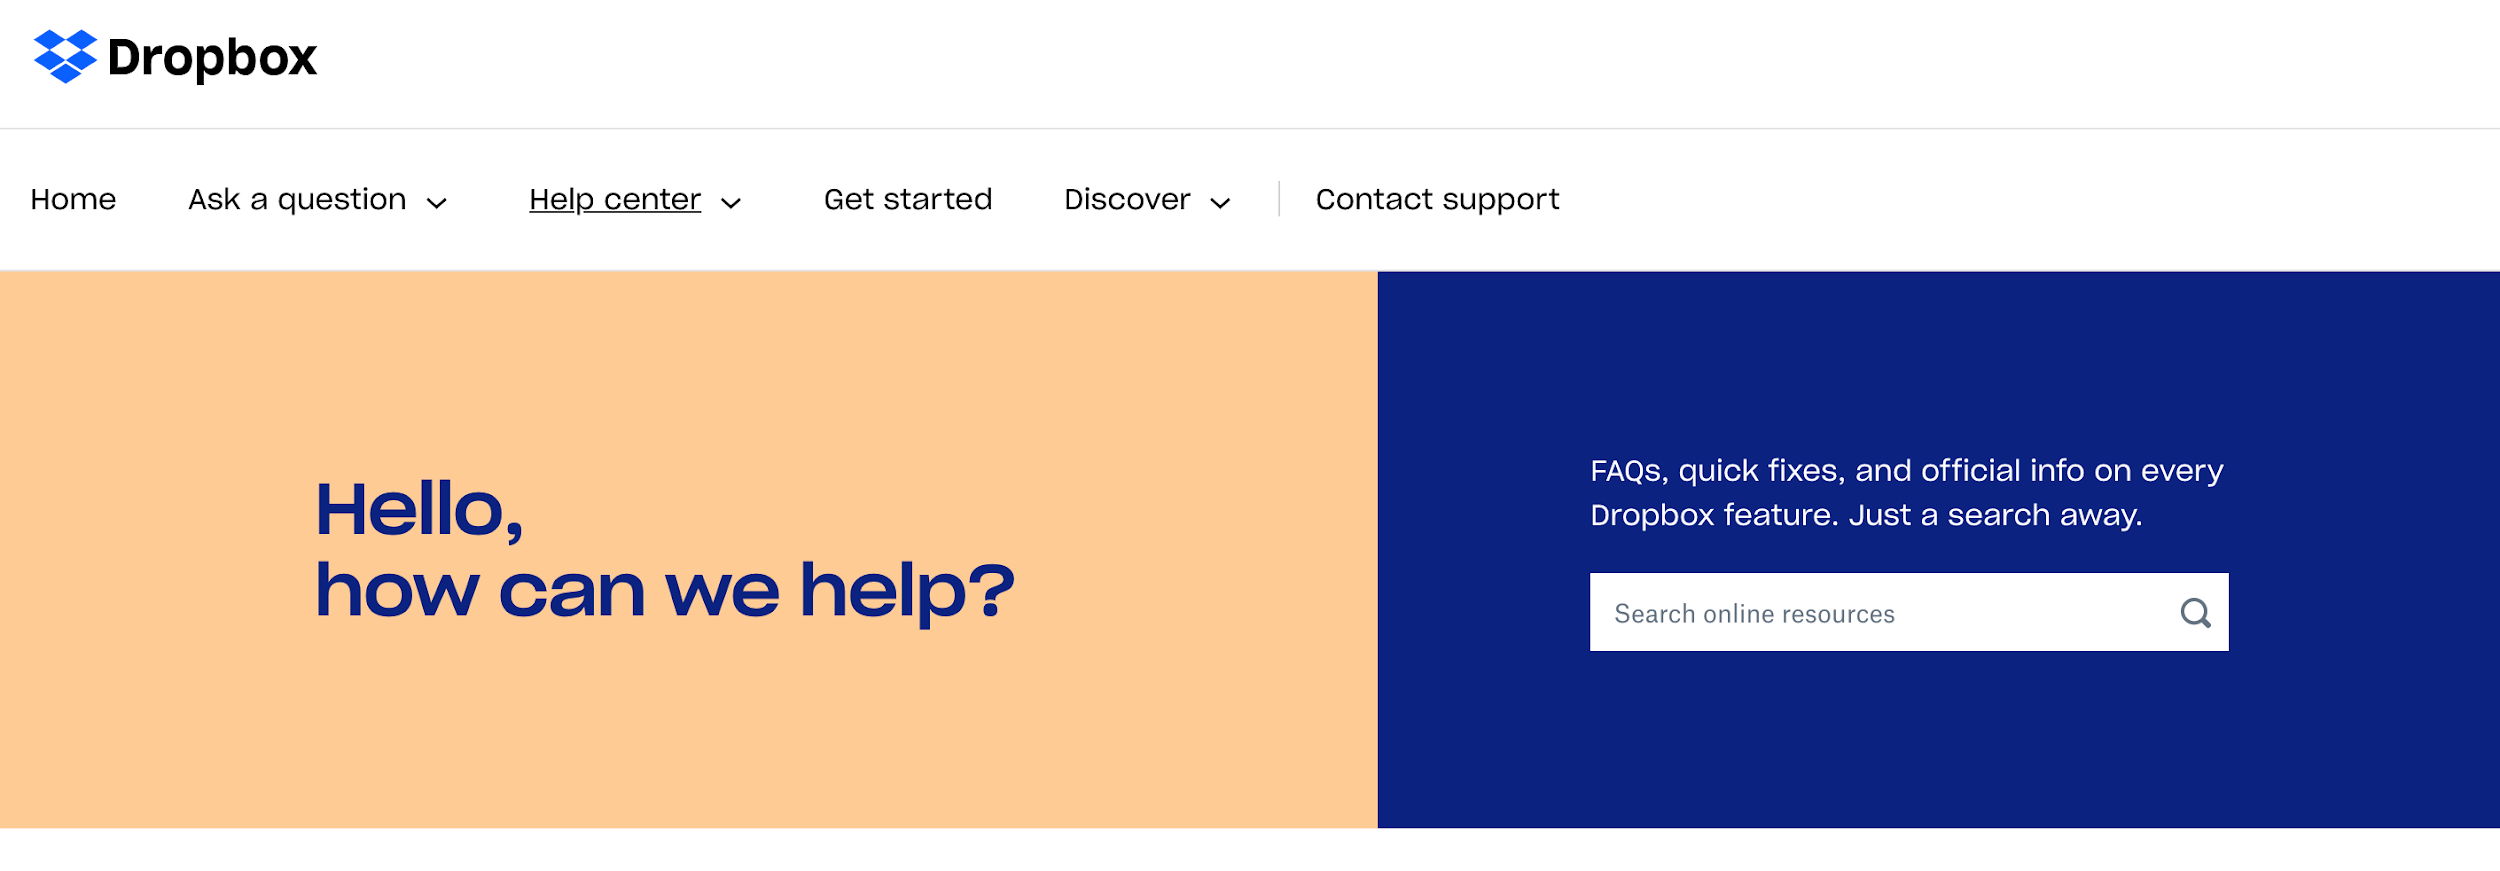 5 Best Practices to Build an Awesome FAQ Page (2020 TIPS)